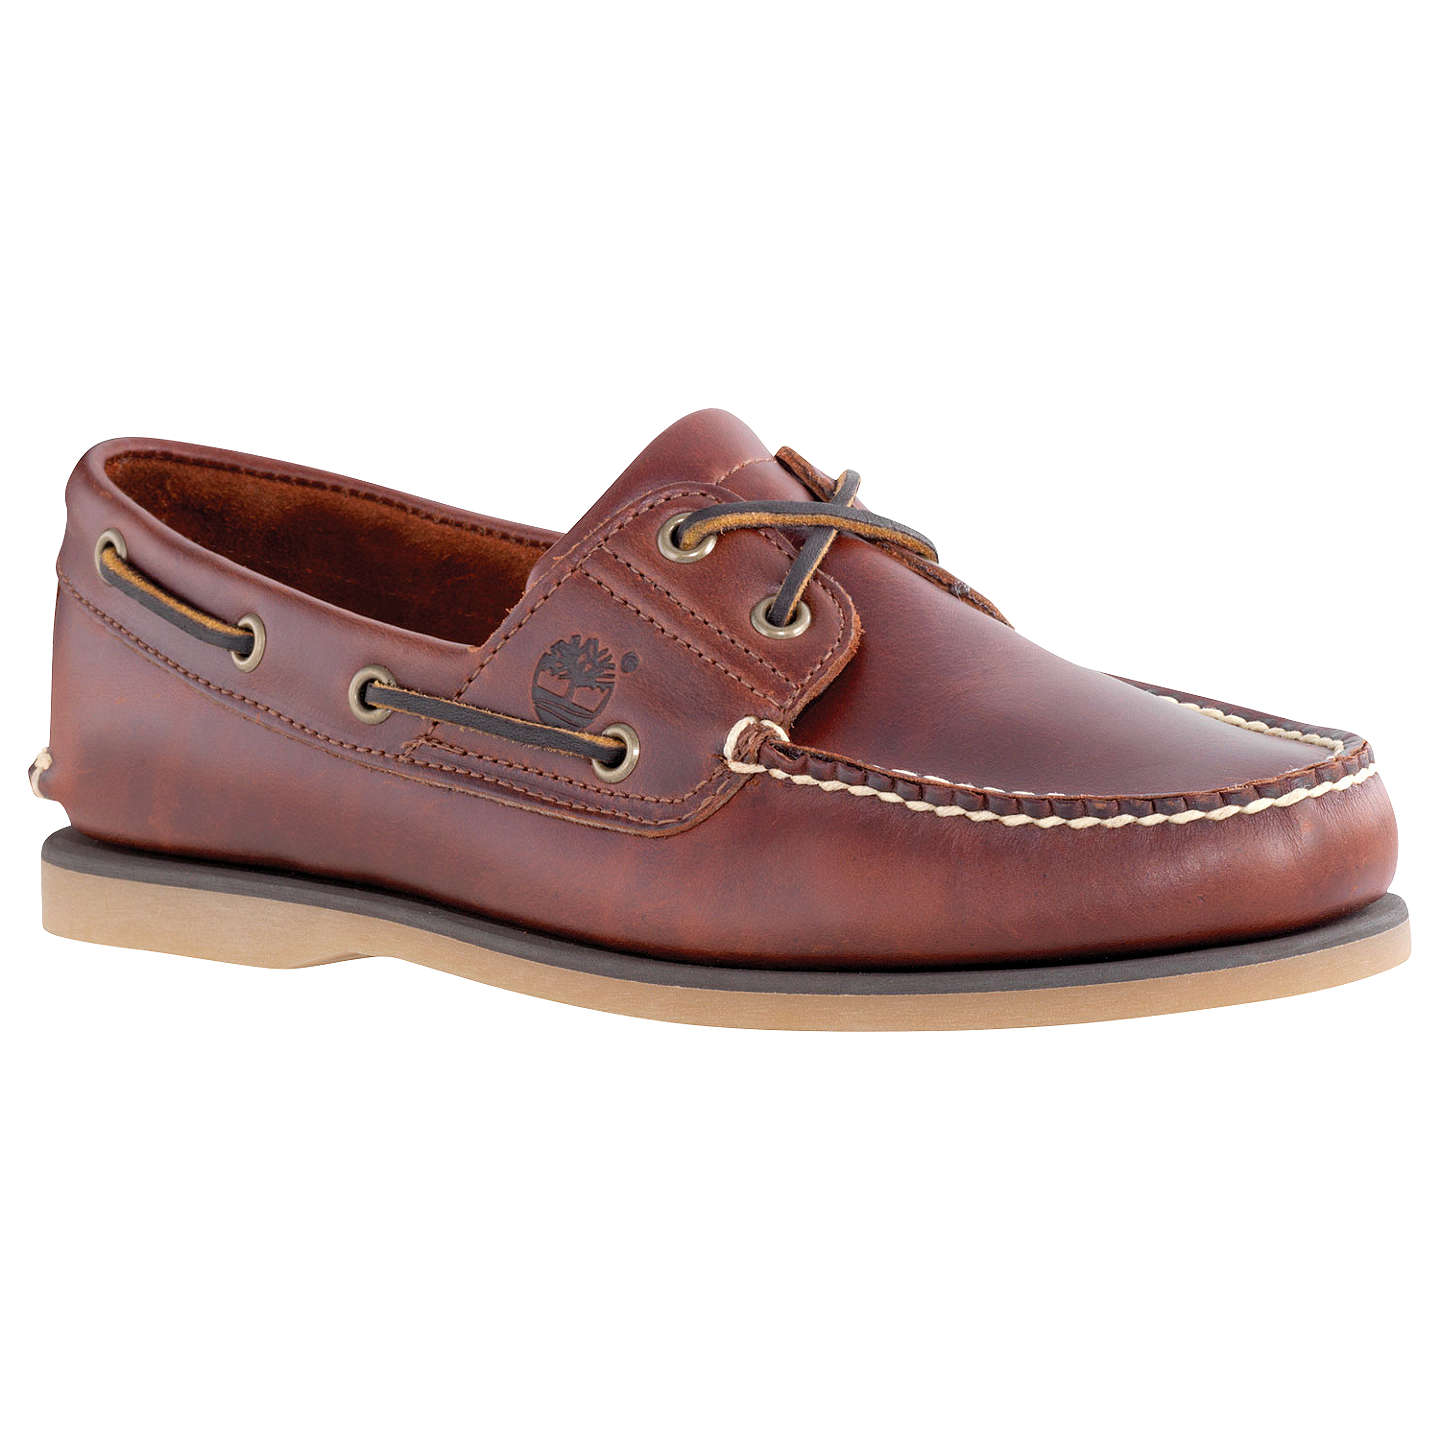 Timberland Leather Boat Shoes Brown 7 Online At Johnlewis Com